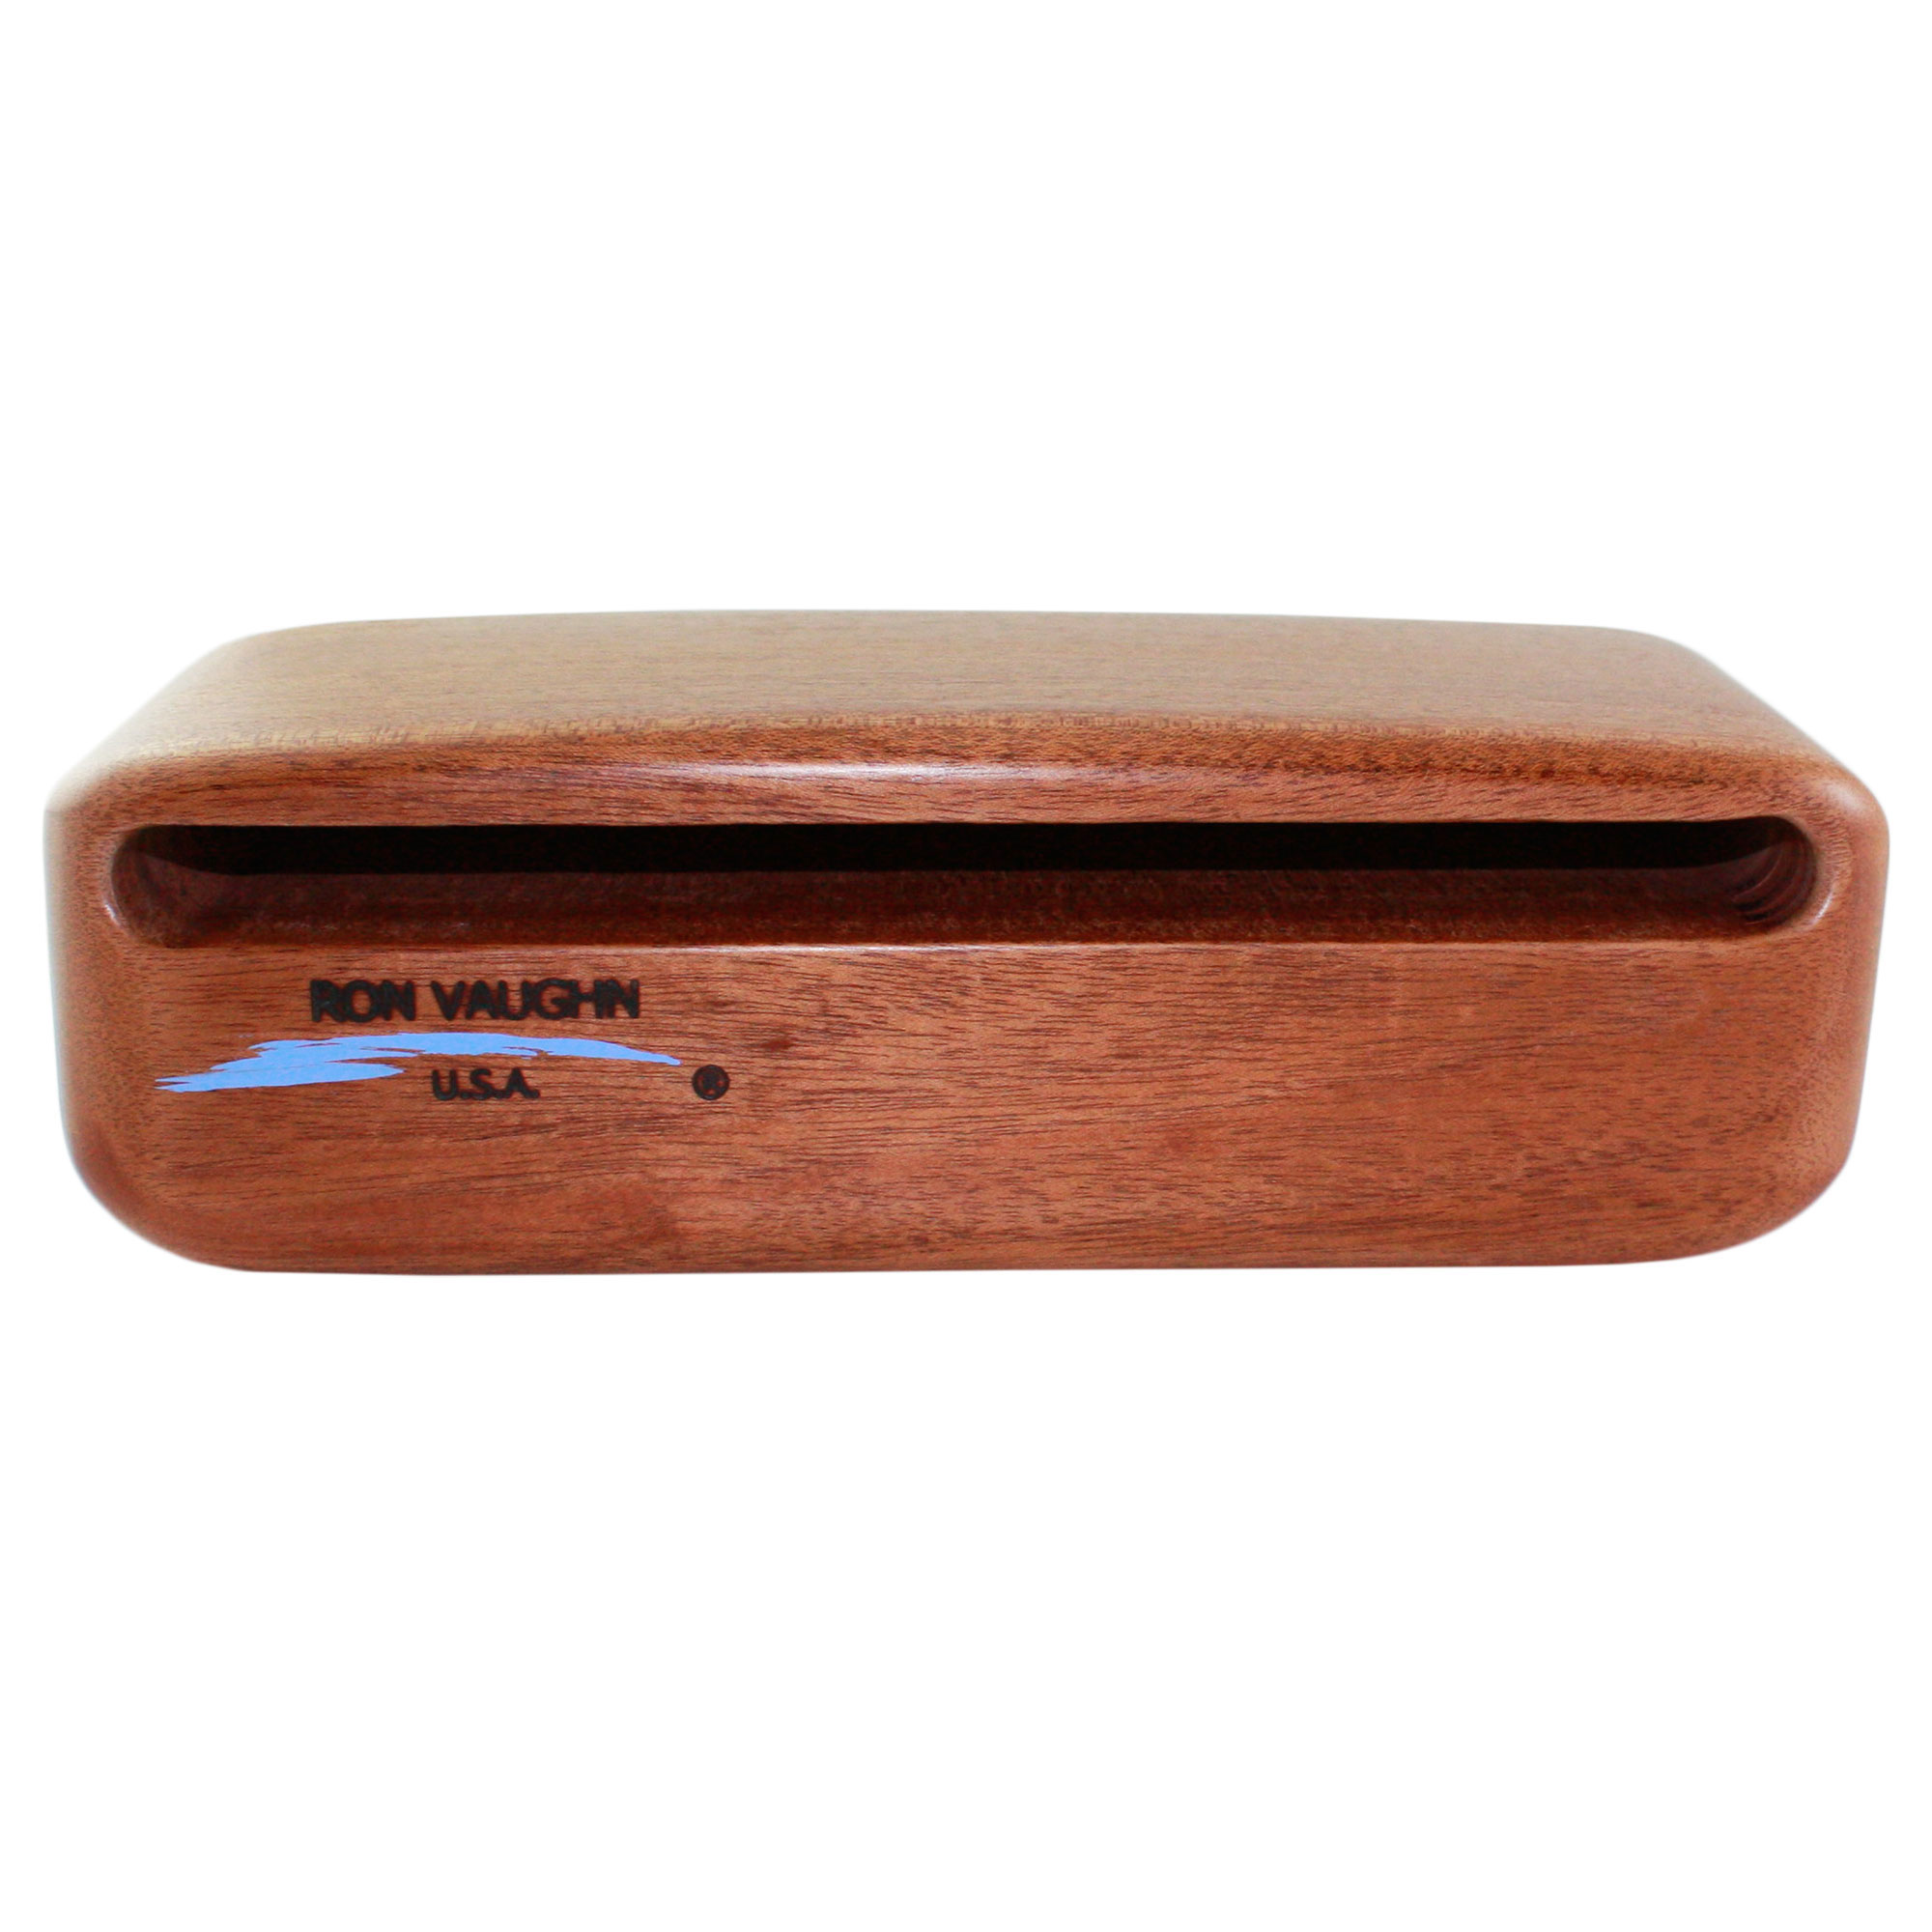 "Ron Vaughn W-6 12.375"" African Mahogany Wood Block"